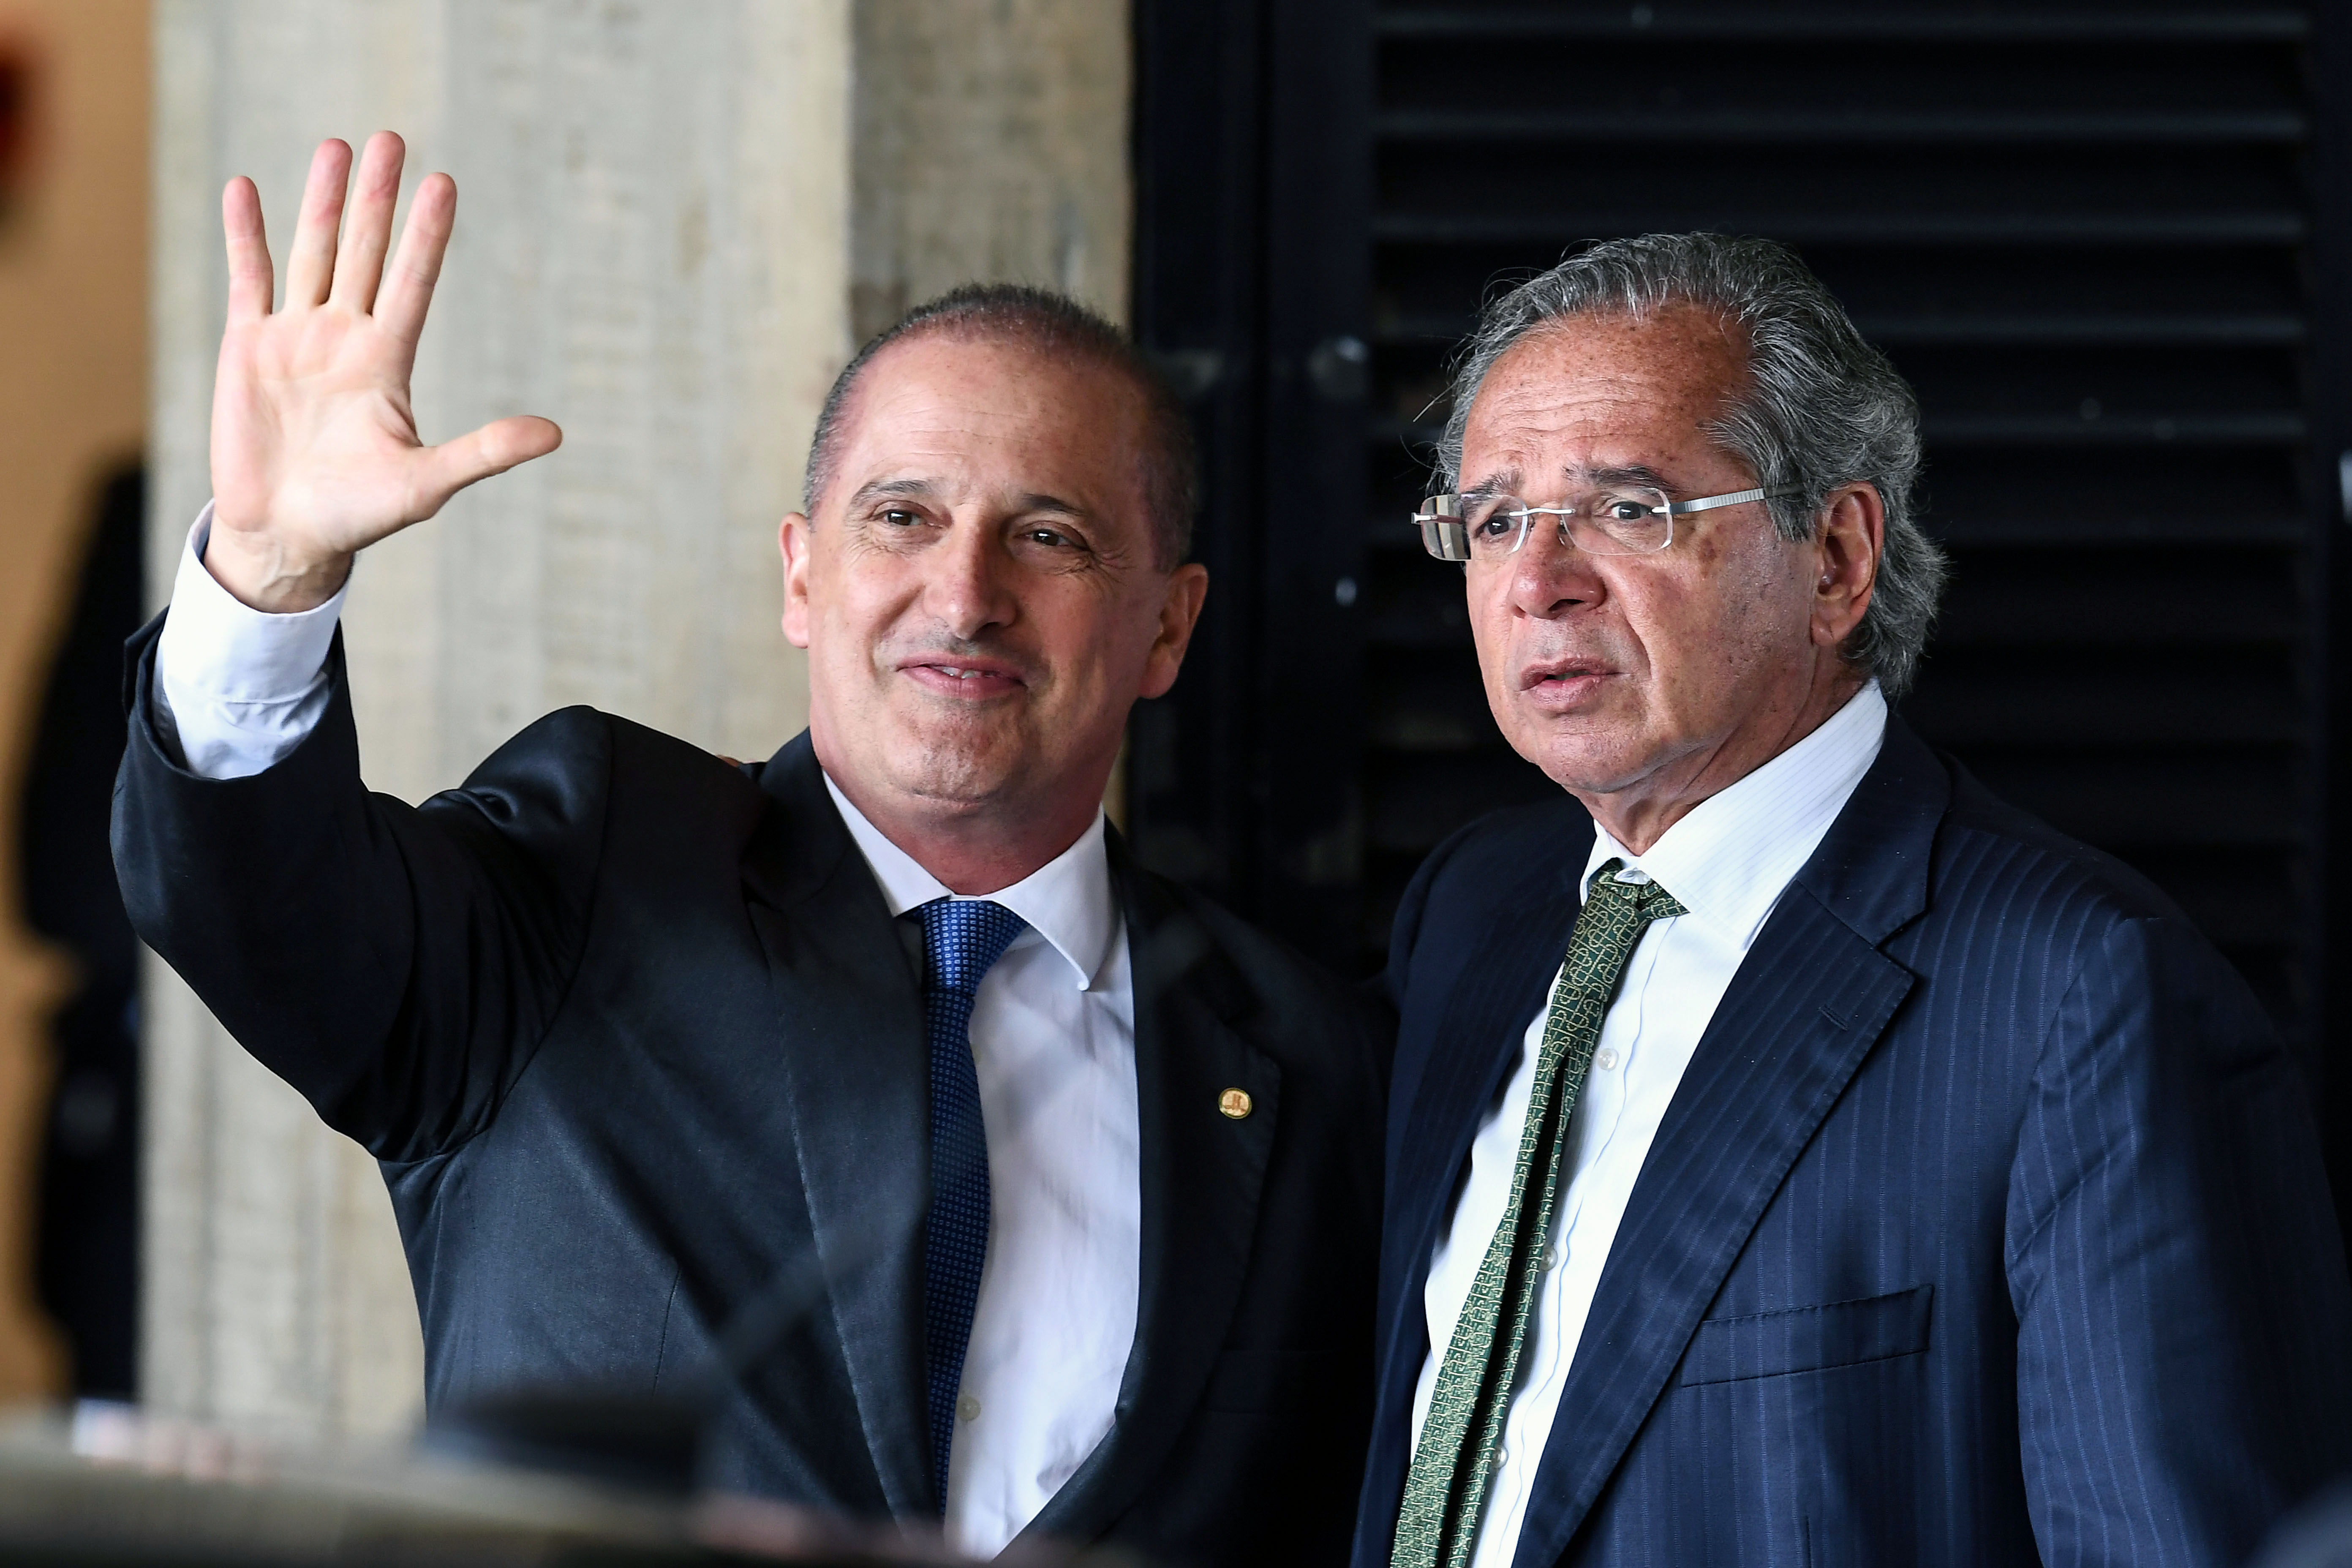 Onyx Lorenzoni (L), the future Chief of Staff of Brazilian president-elect Jair Bolsonaro's government and Paulo Guedes, who was appointed as Finance Minister gesture uppon arrival at the transitional government's headquarters in Brasilia on November 21, 2018. (Photo by EVARISTO SA / AFP)        (Photo credit should read EVARISTO SA/AFP/Getty Images)